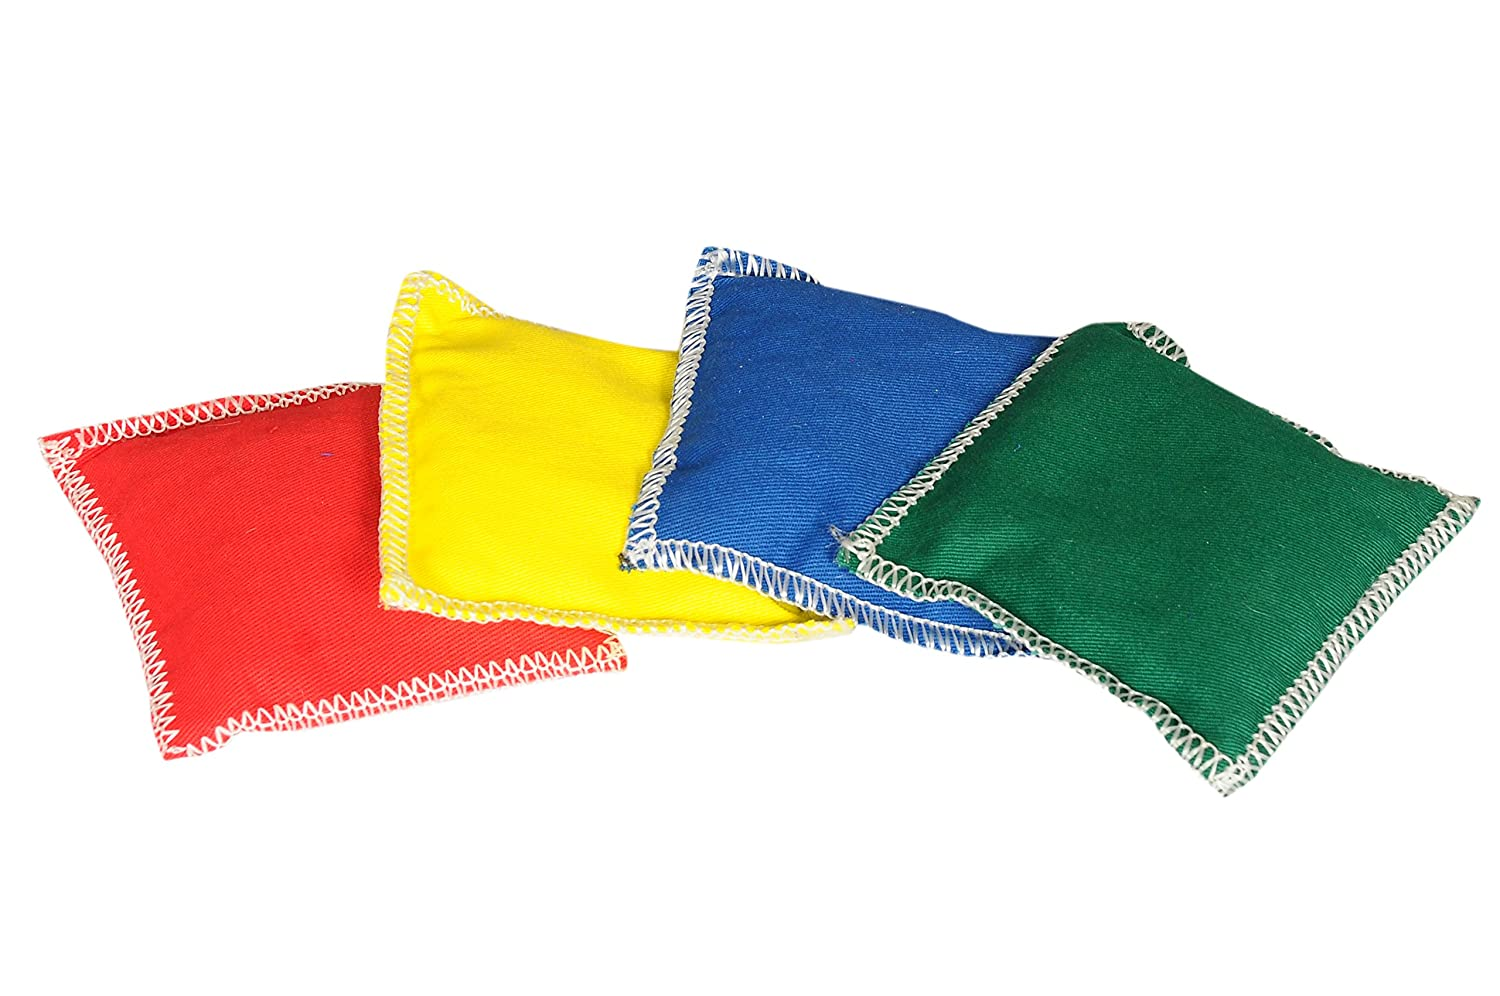 GSI Multicolor Set of 4 Cotton Toss Bean Bag OverLock Stitched for Activity Games and Primary Education - Pack of 4 (5 inch)